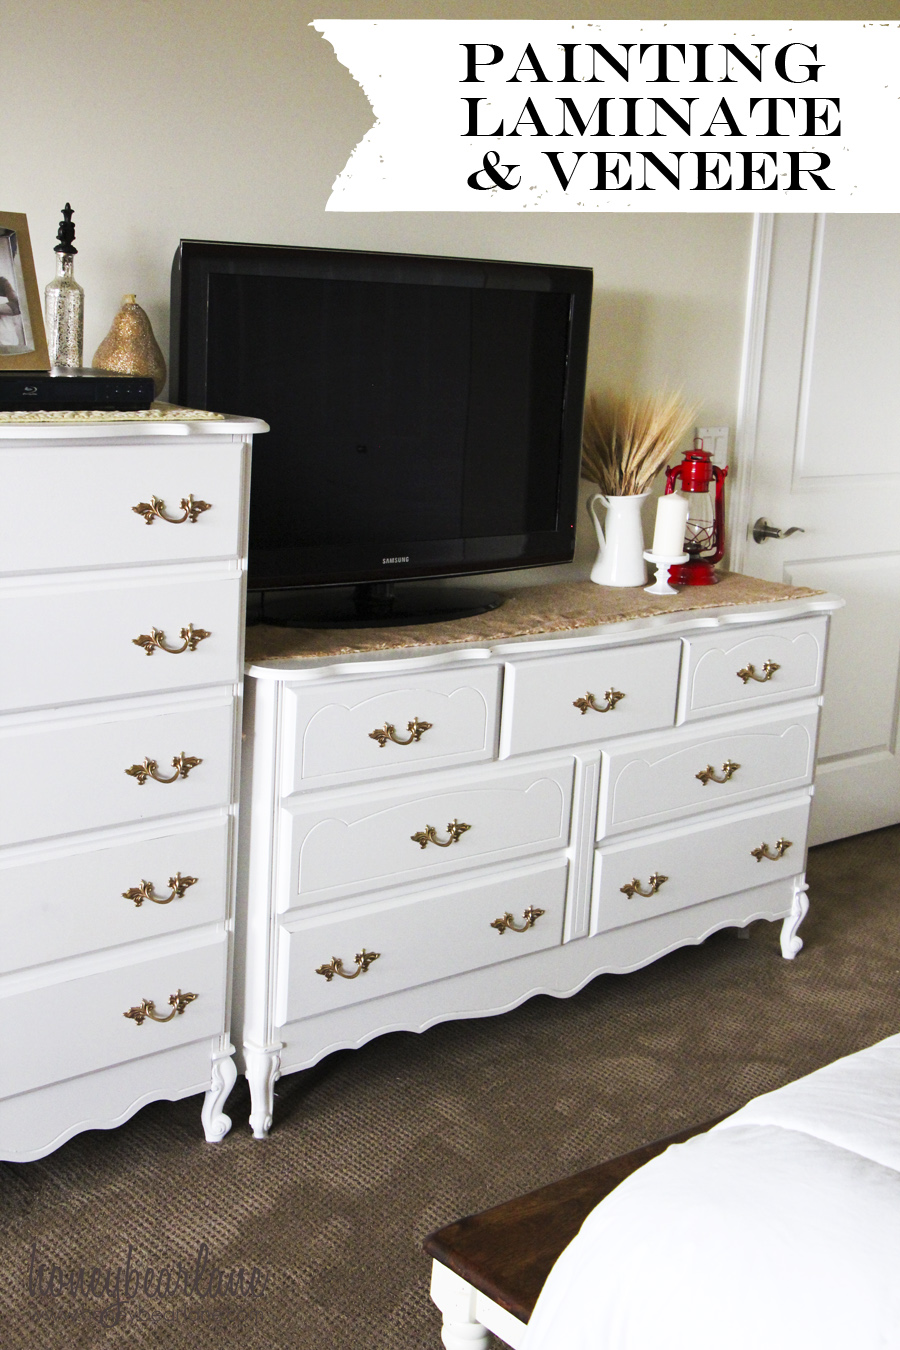 How To Paint A Laminate Dresser Black